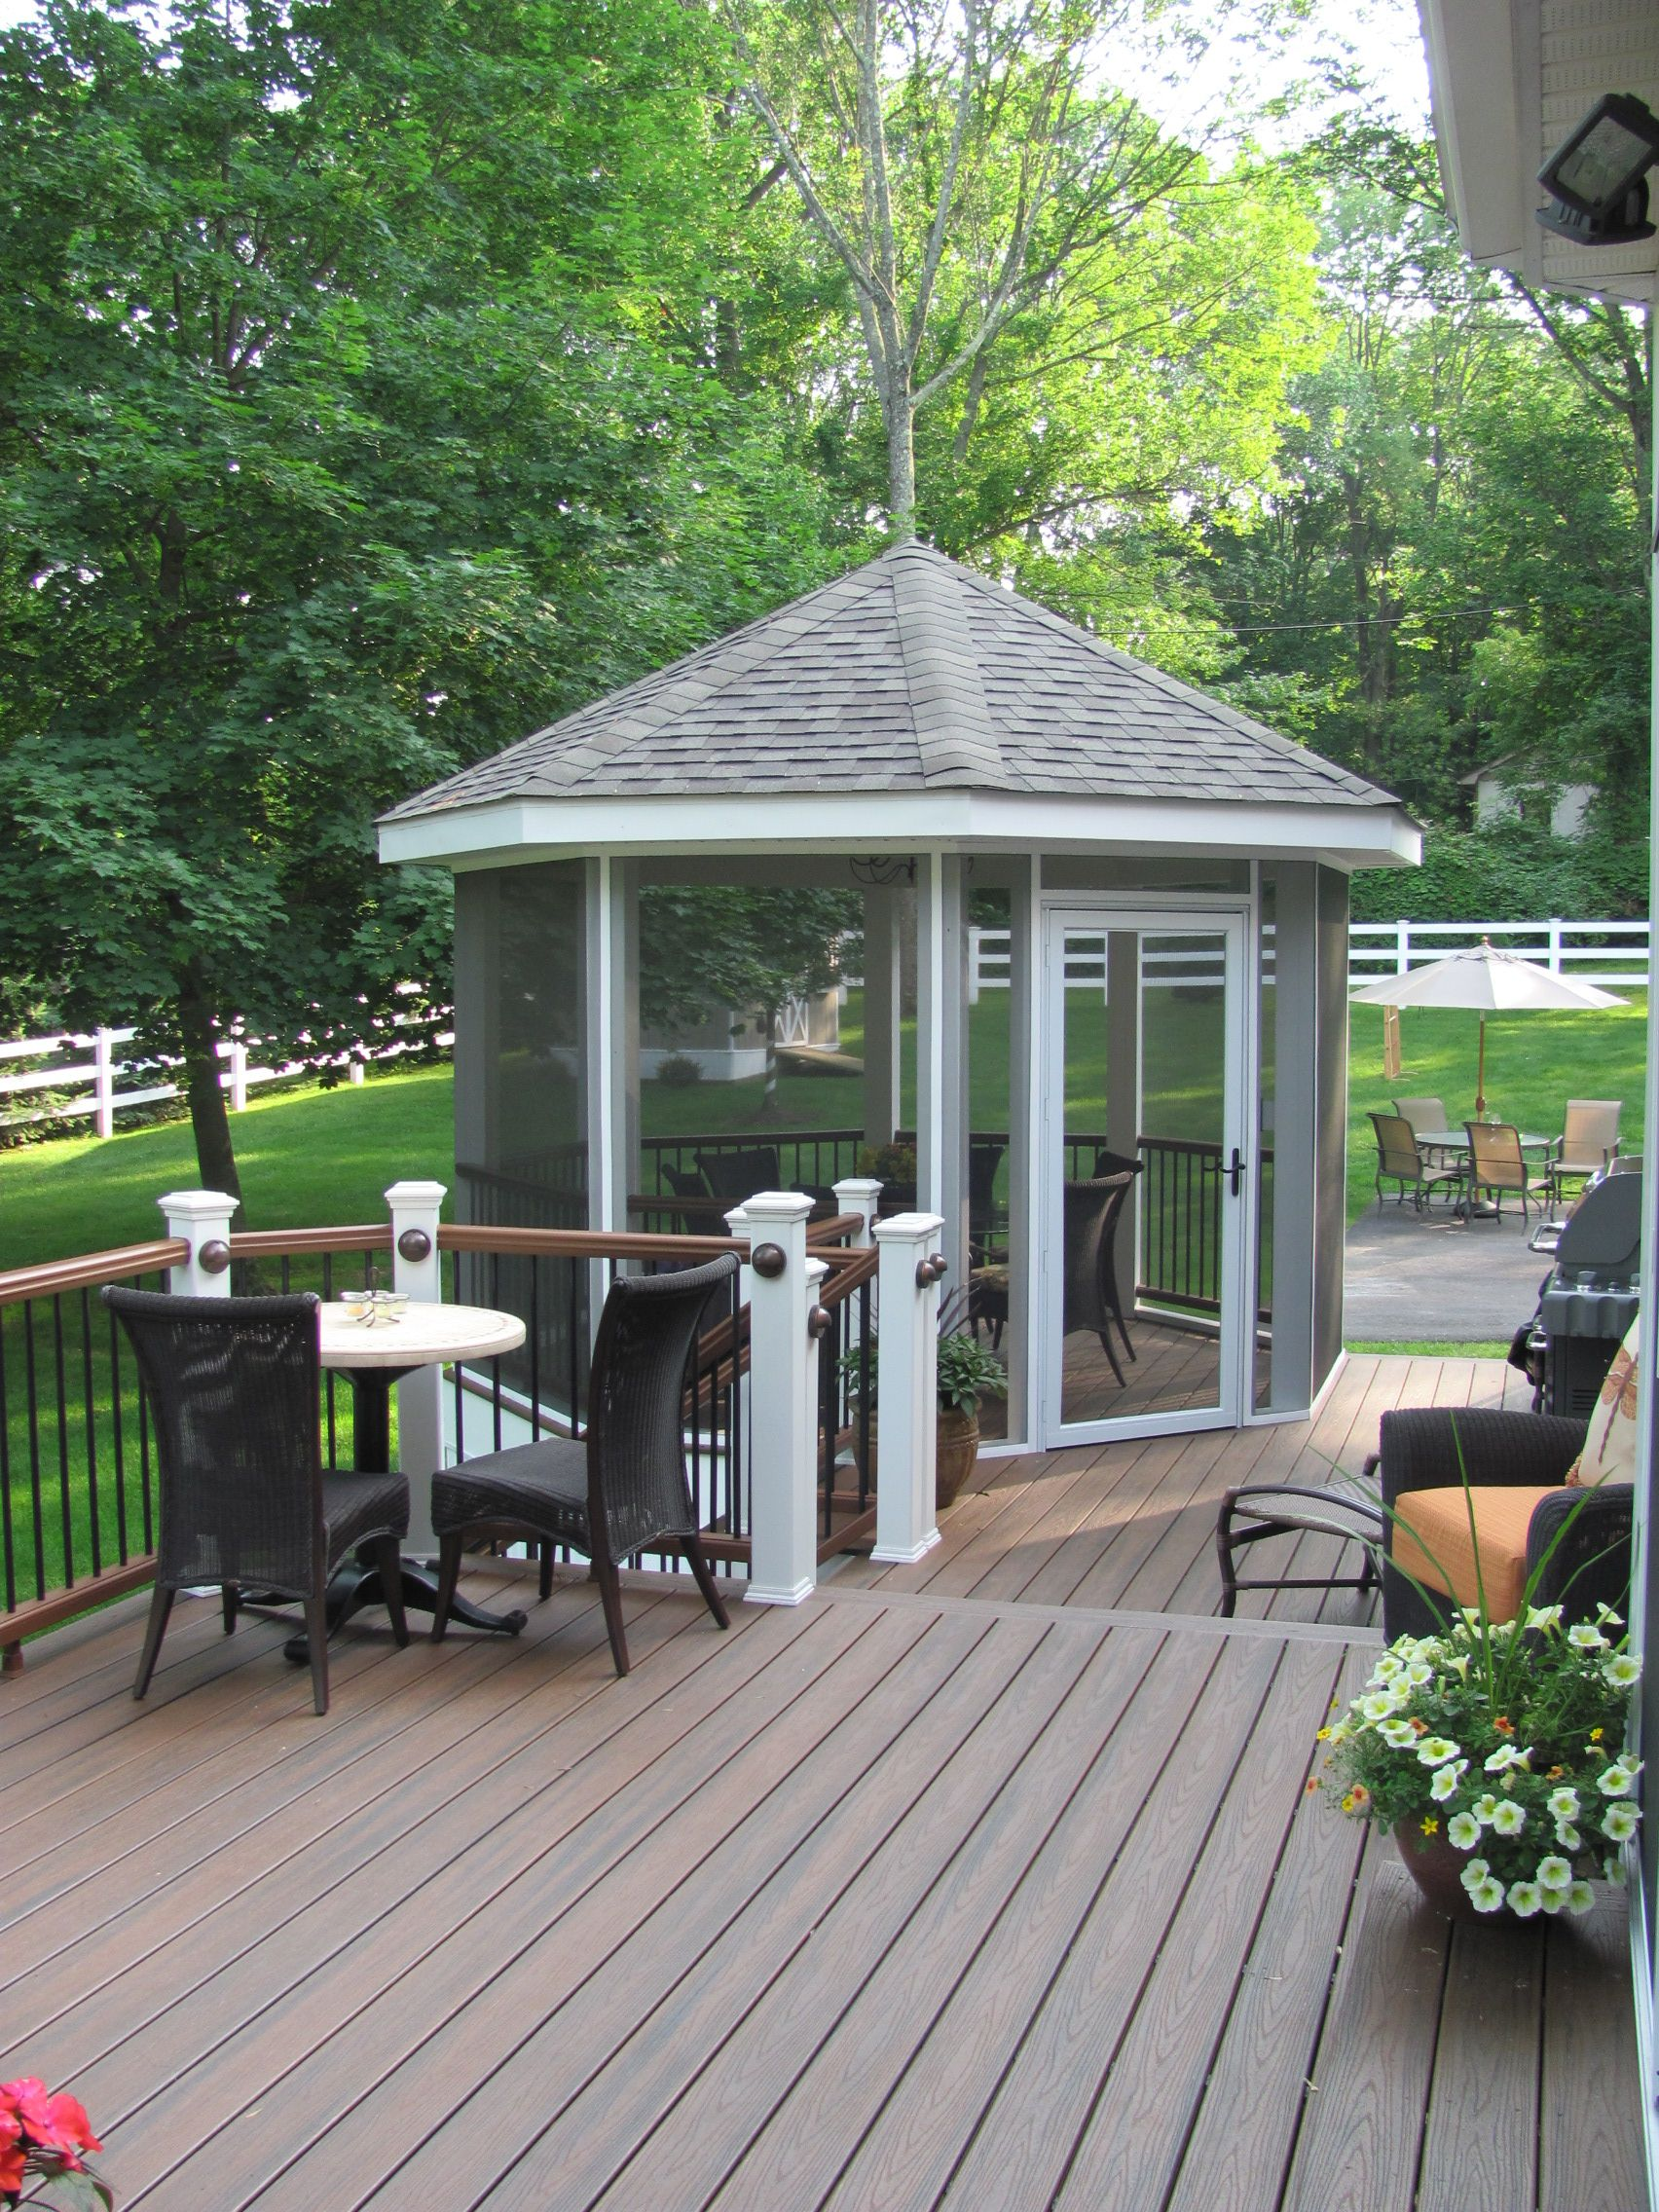 Multi tiered deck with screened in gazebo provides open for Deck with gazebo